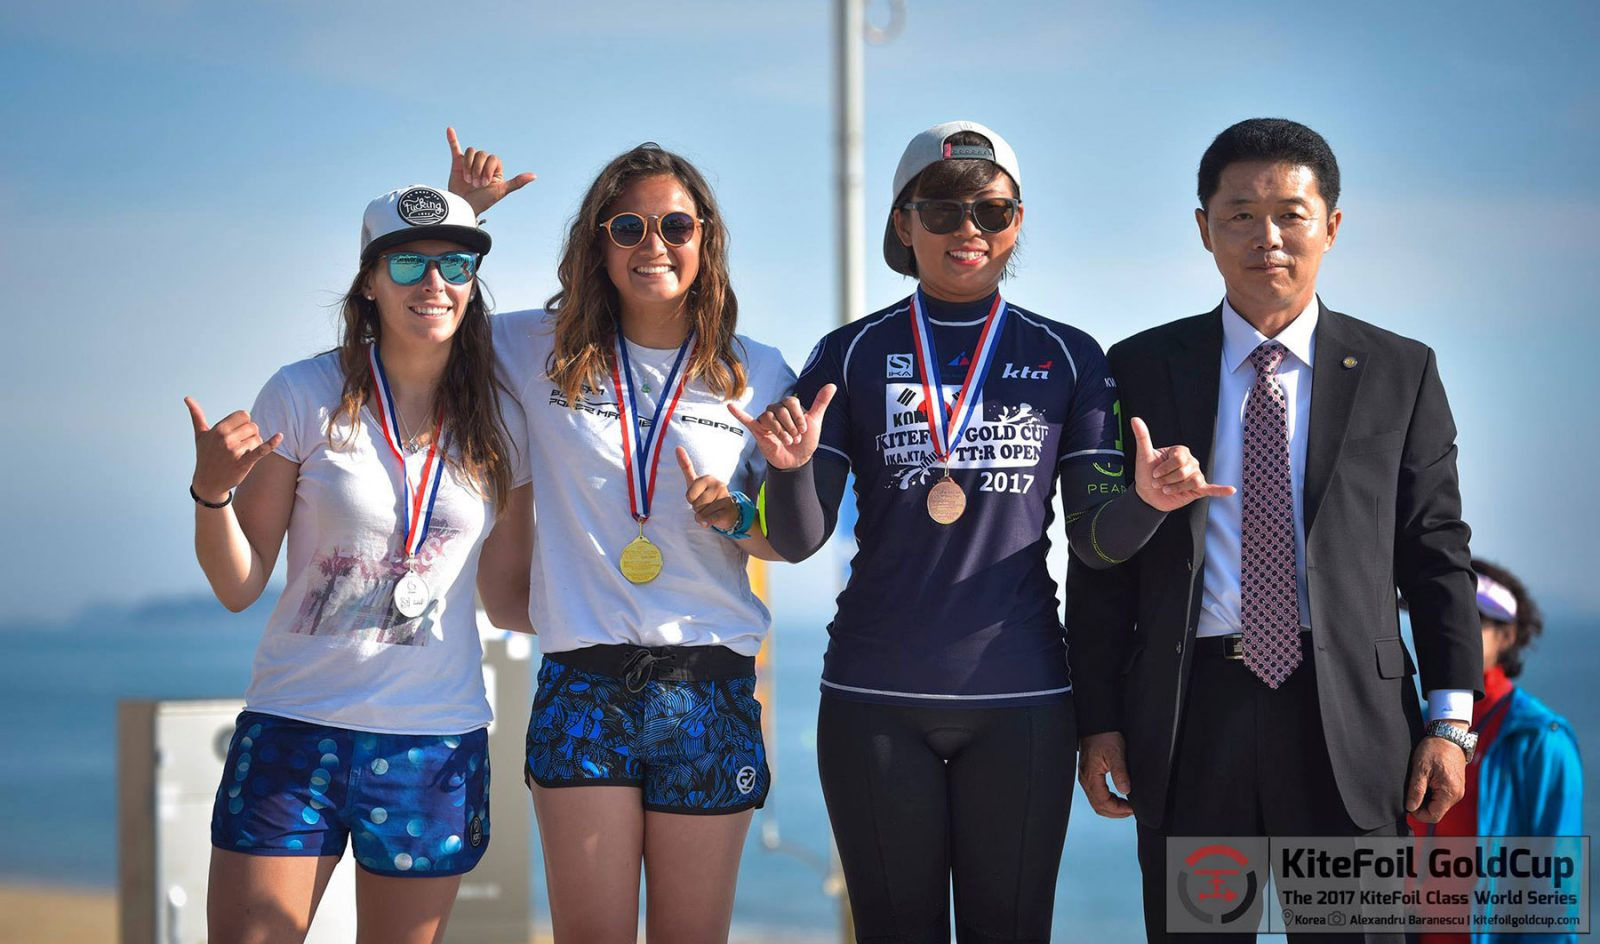 Anais Desjardins takes the win in Korea in the Kite Foil Gold Cup